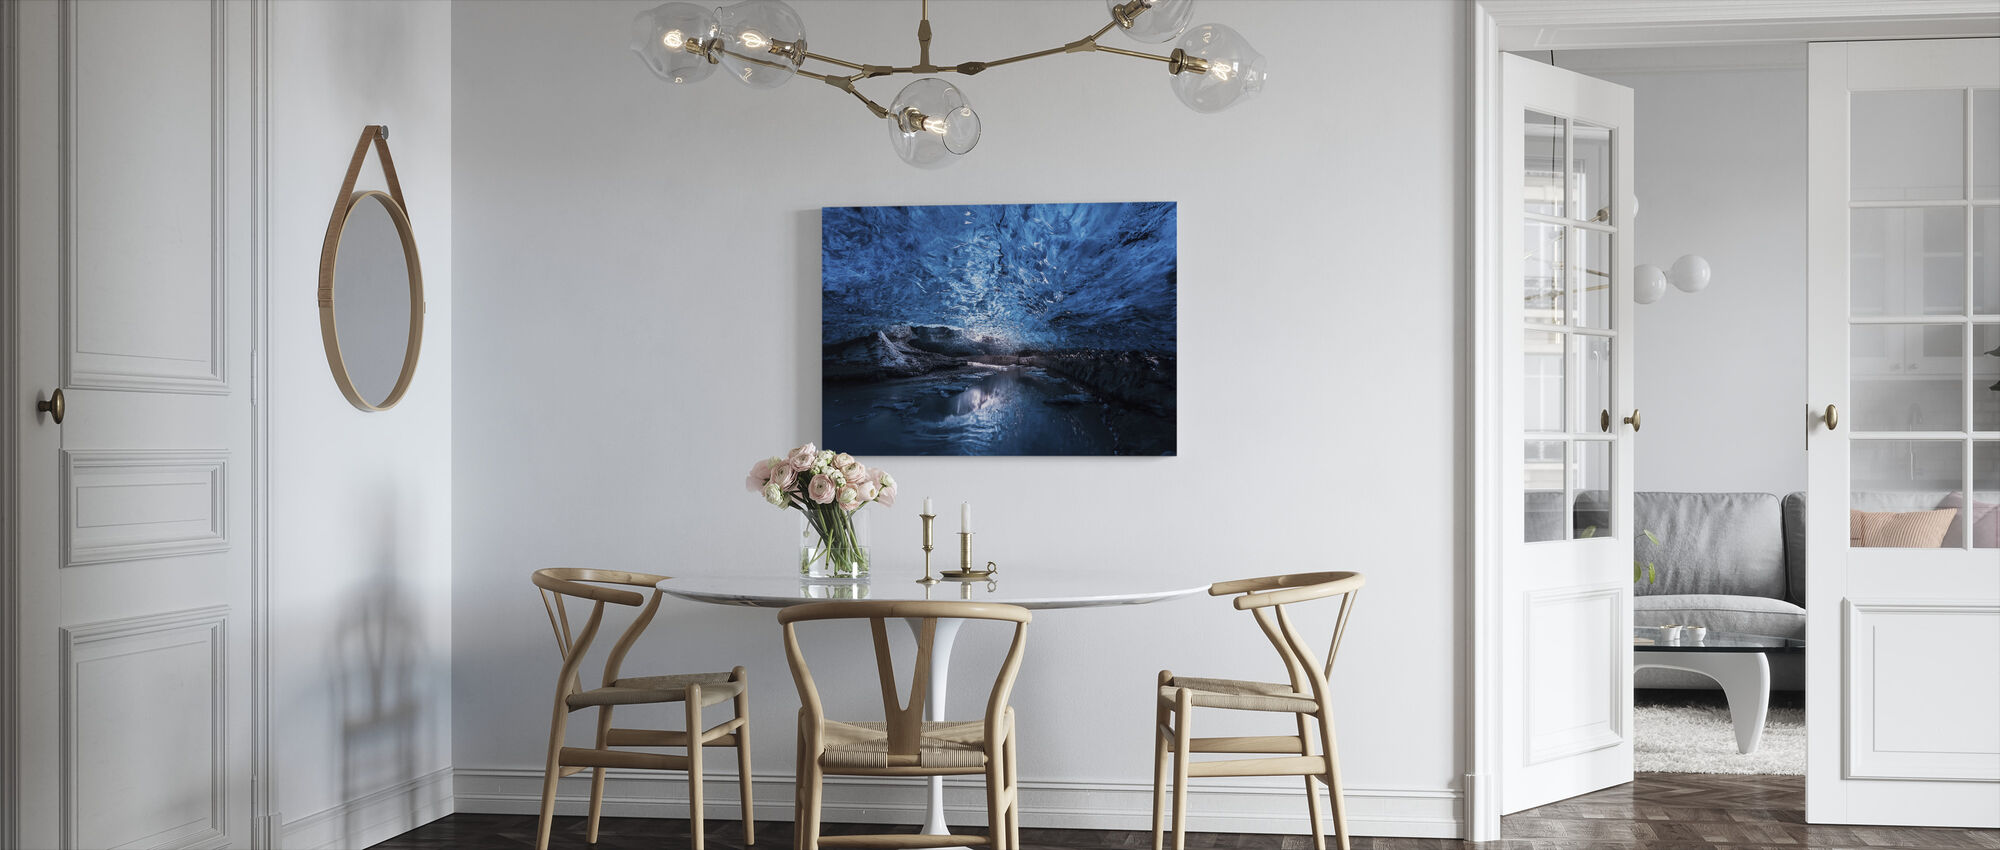 Deep Inside - Canvas print - Kitchen